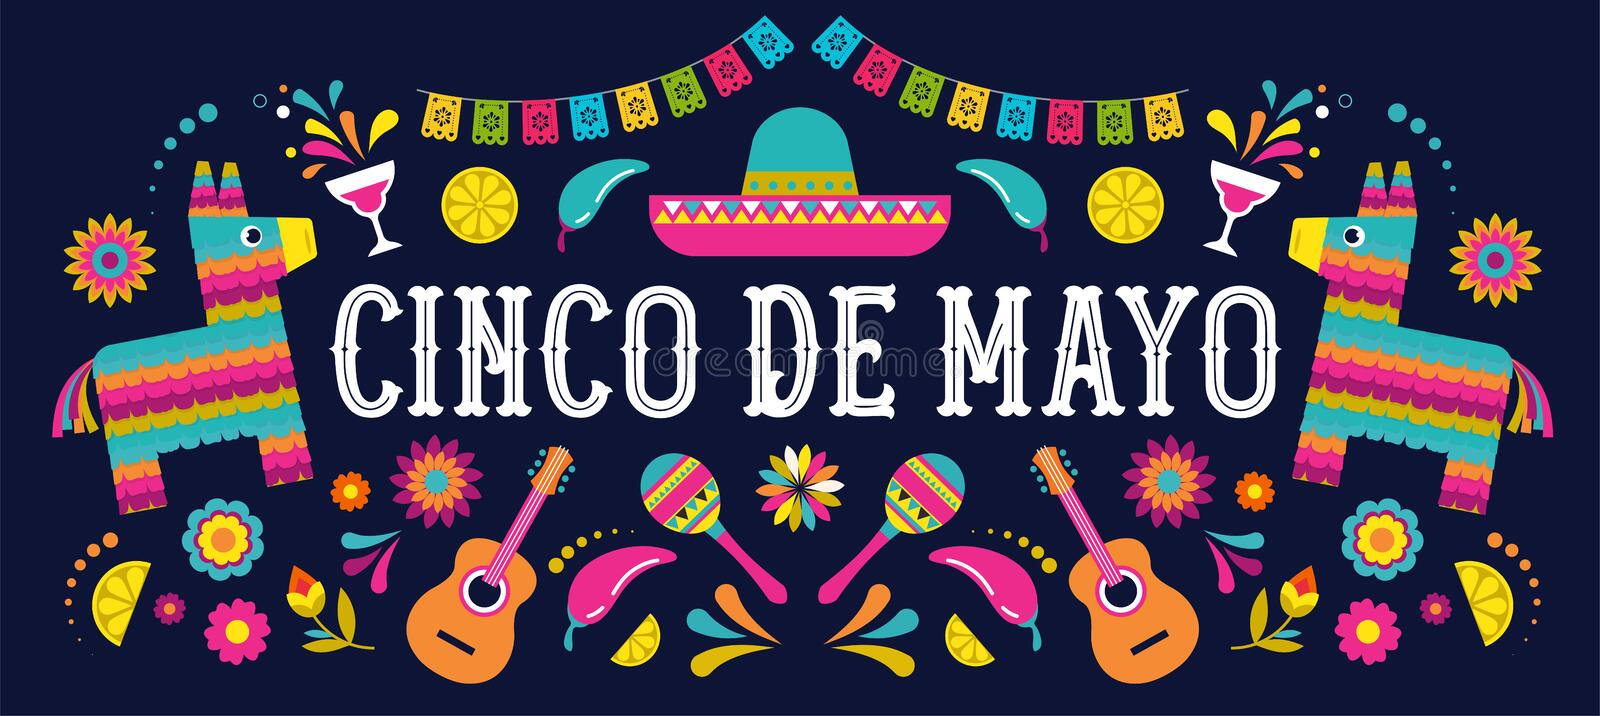 Cinco de Mayo - May 5, federal holiday in Mexico. Fiesta banner and poster design with flags, flowers, decorations. Cinco de Mayo - May 5, federal holiday in royalty free illustration